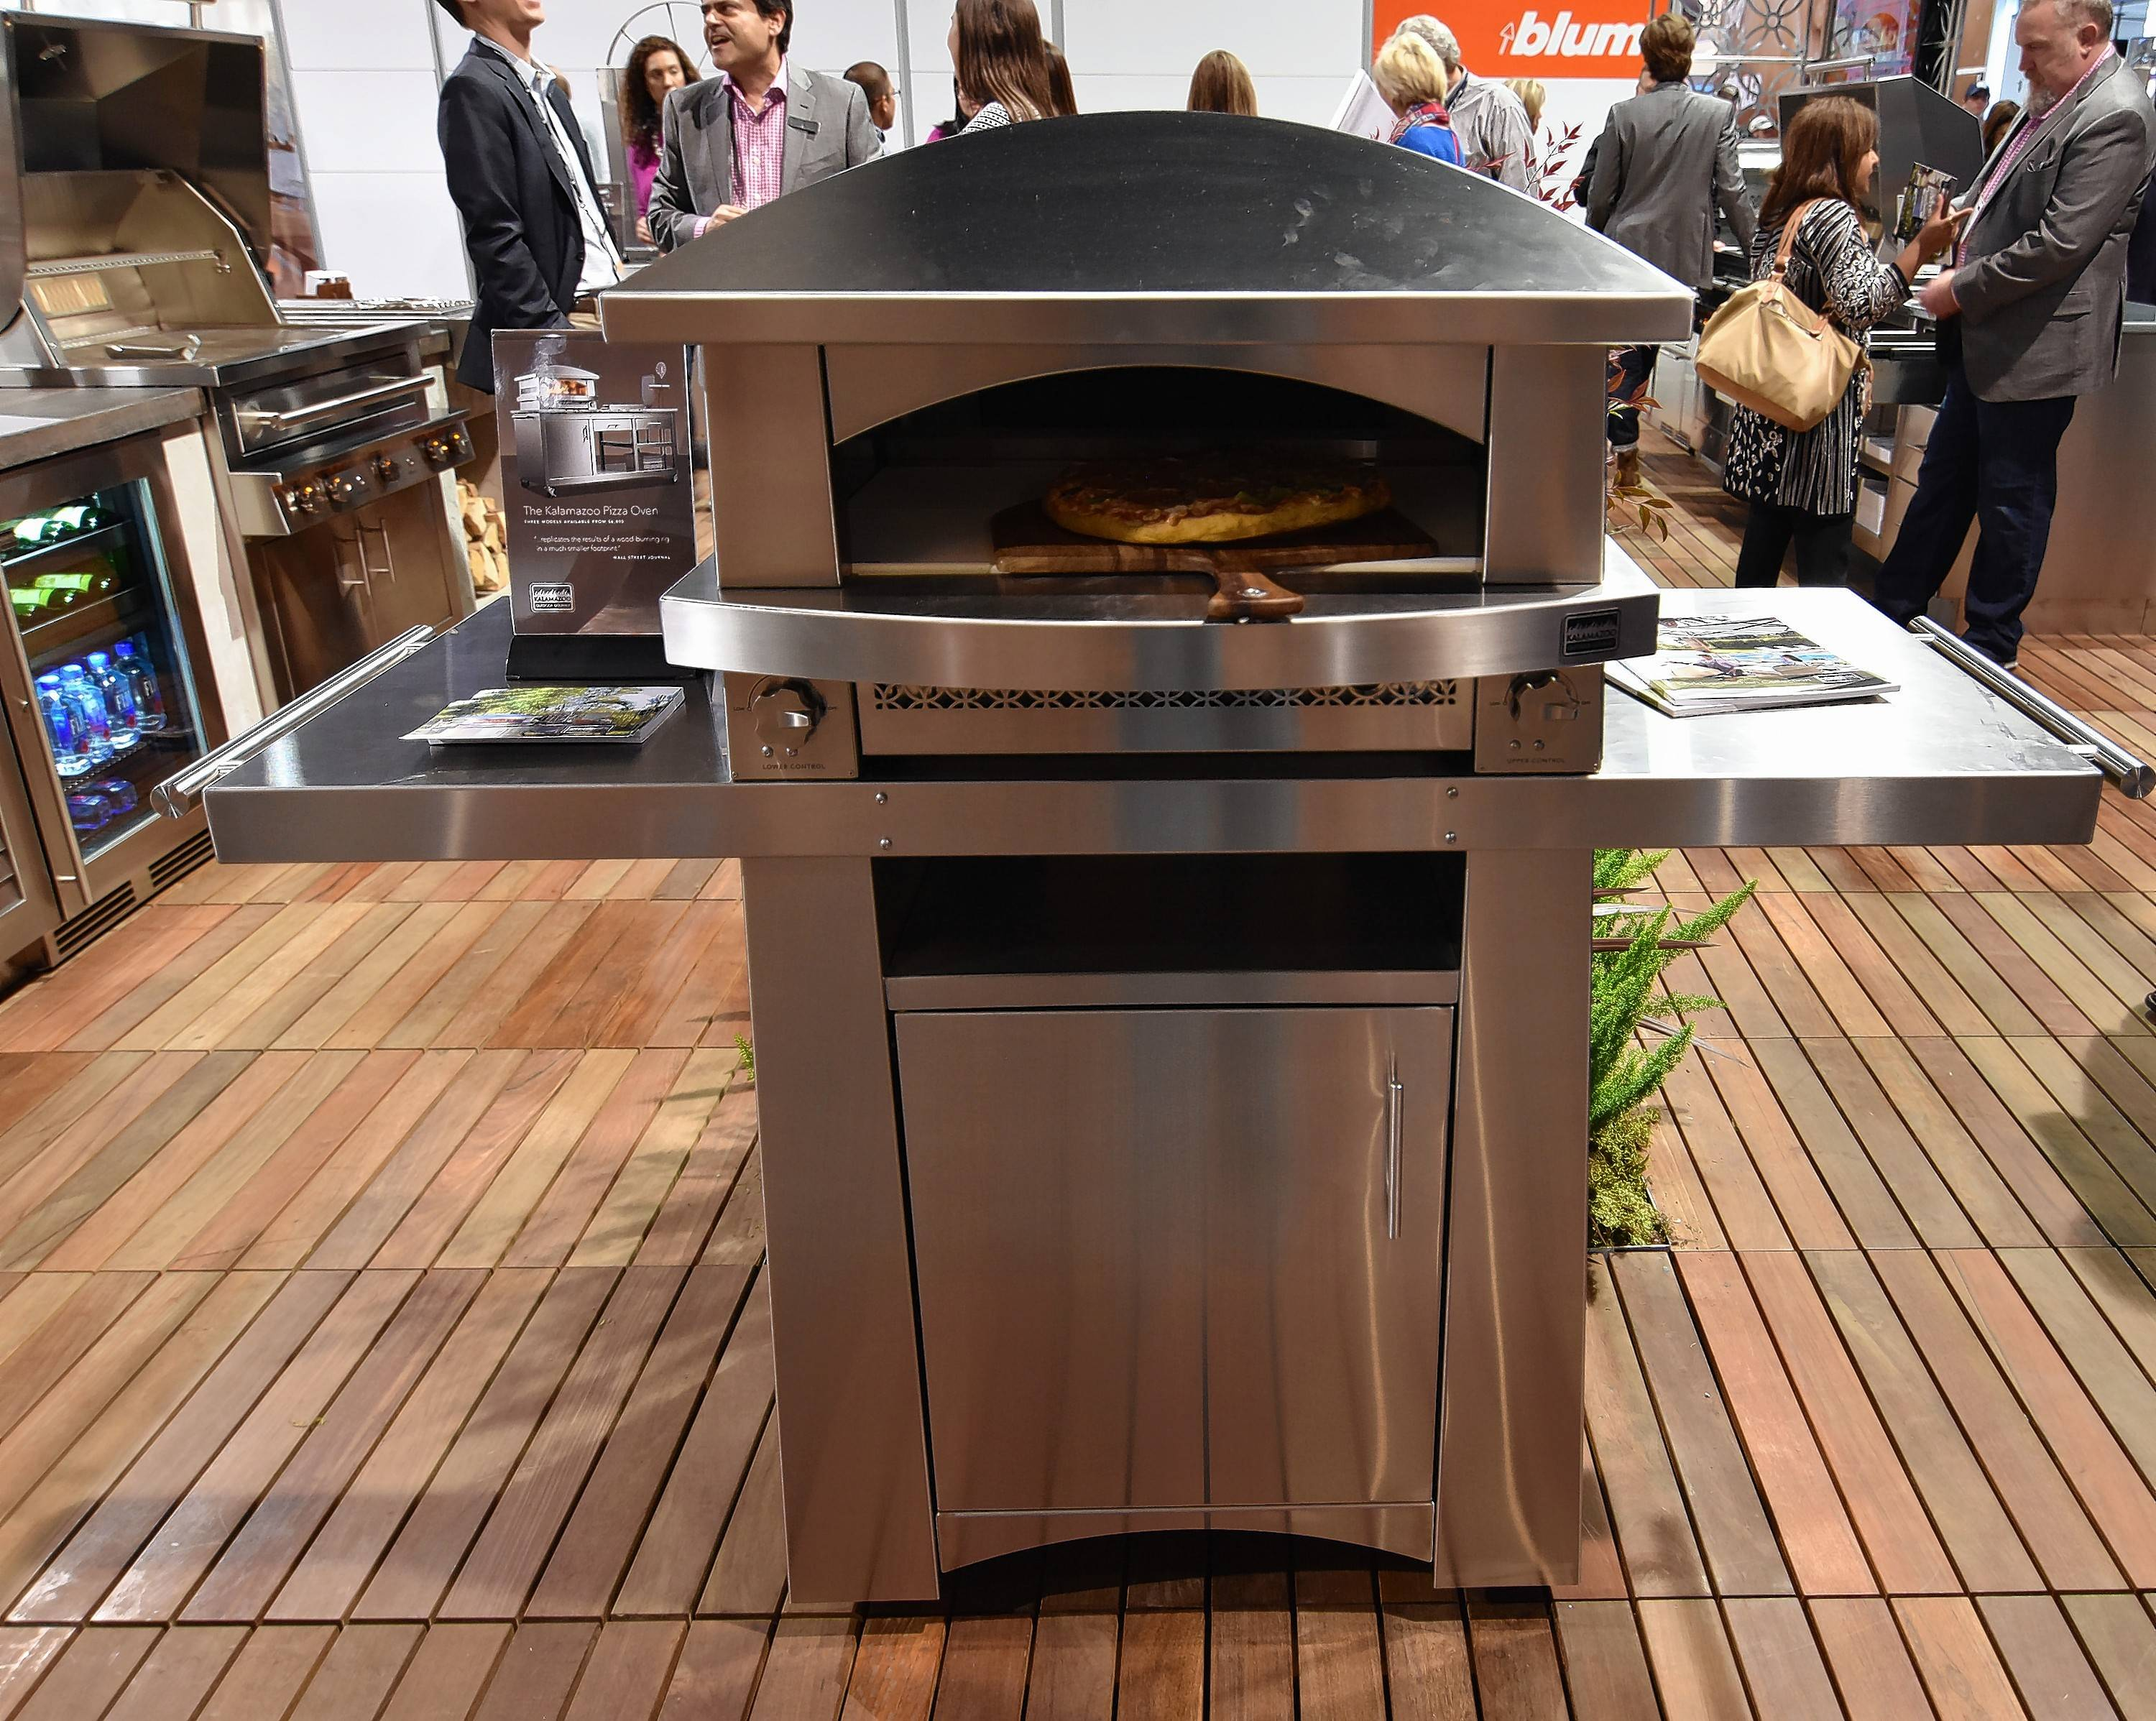 Kalamazoo Outdoor Gourmet Debuted Its $11,000 Free Standing Artisan Fire  Pizza Oven At The Kitchen